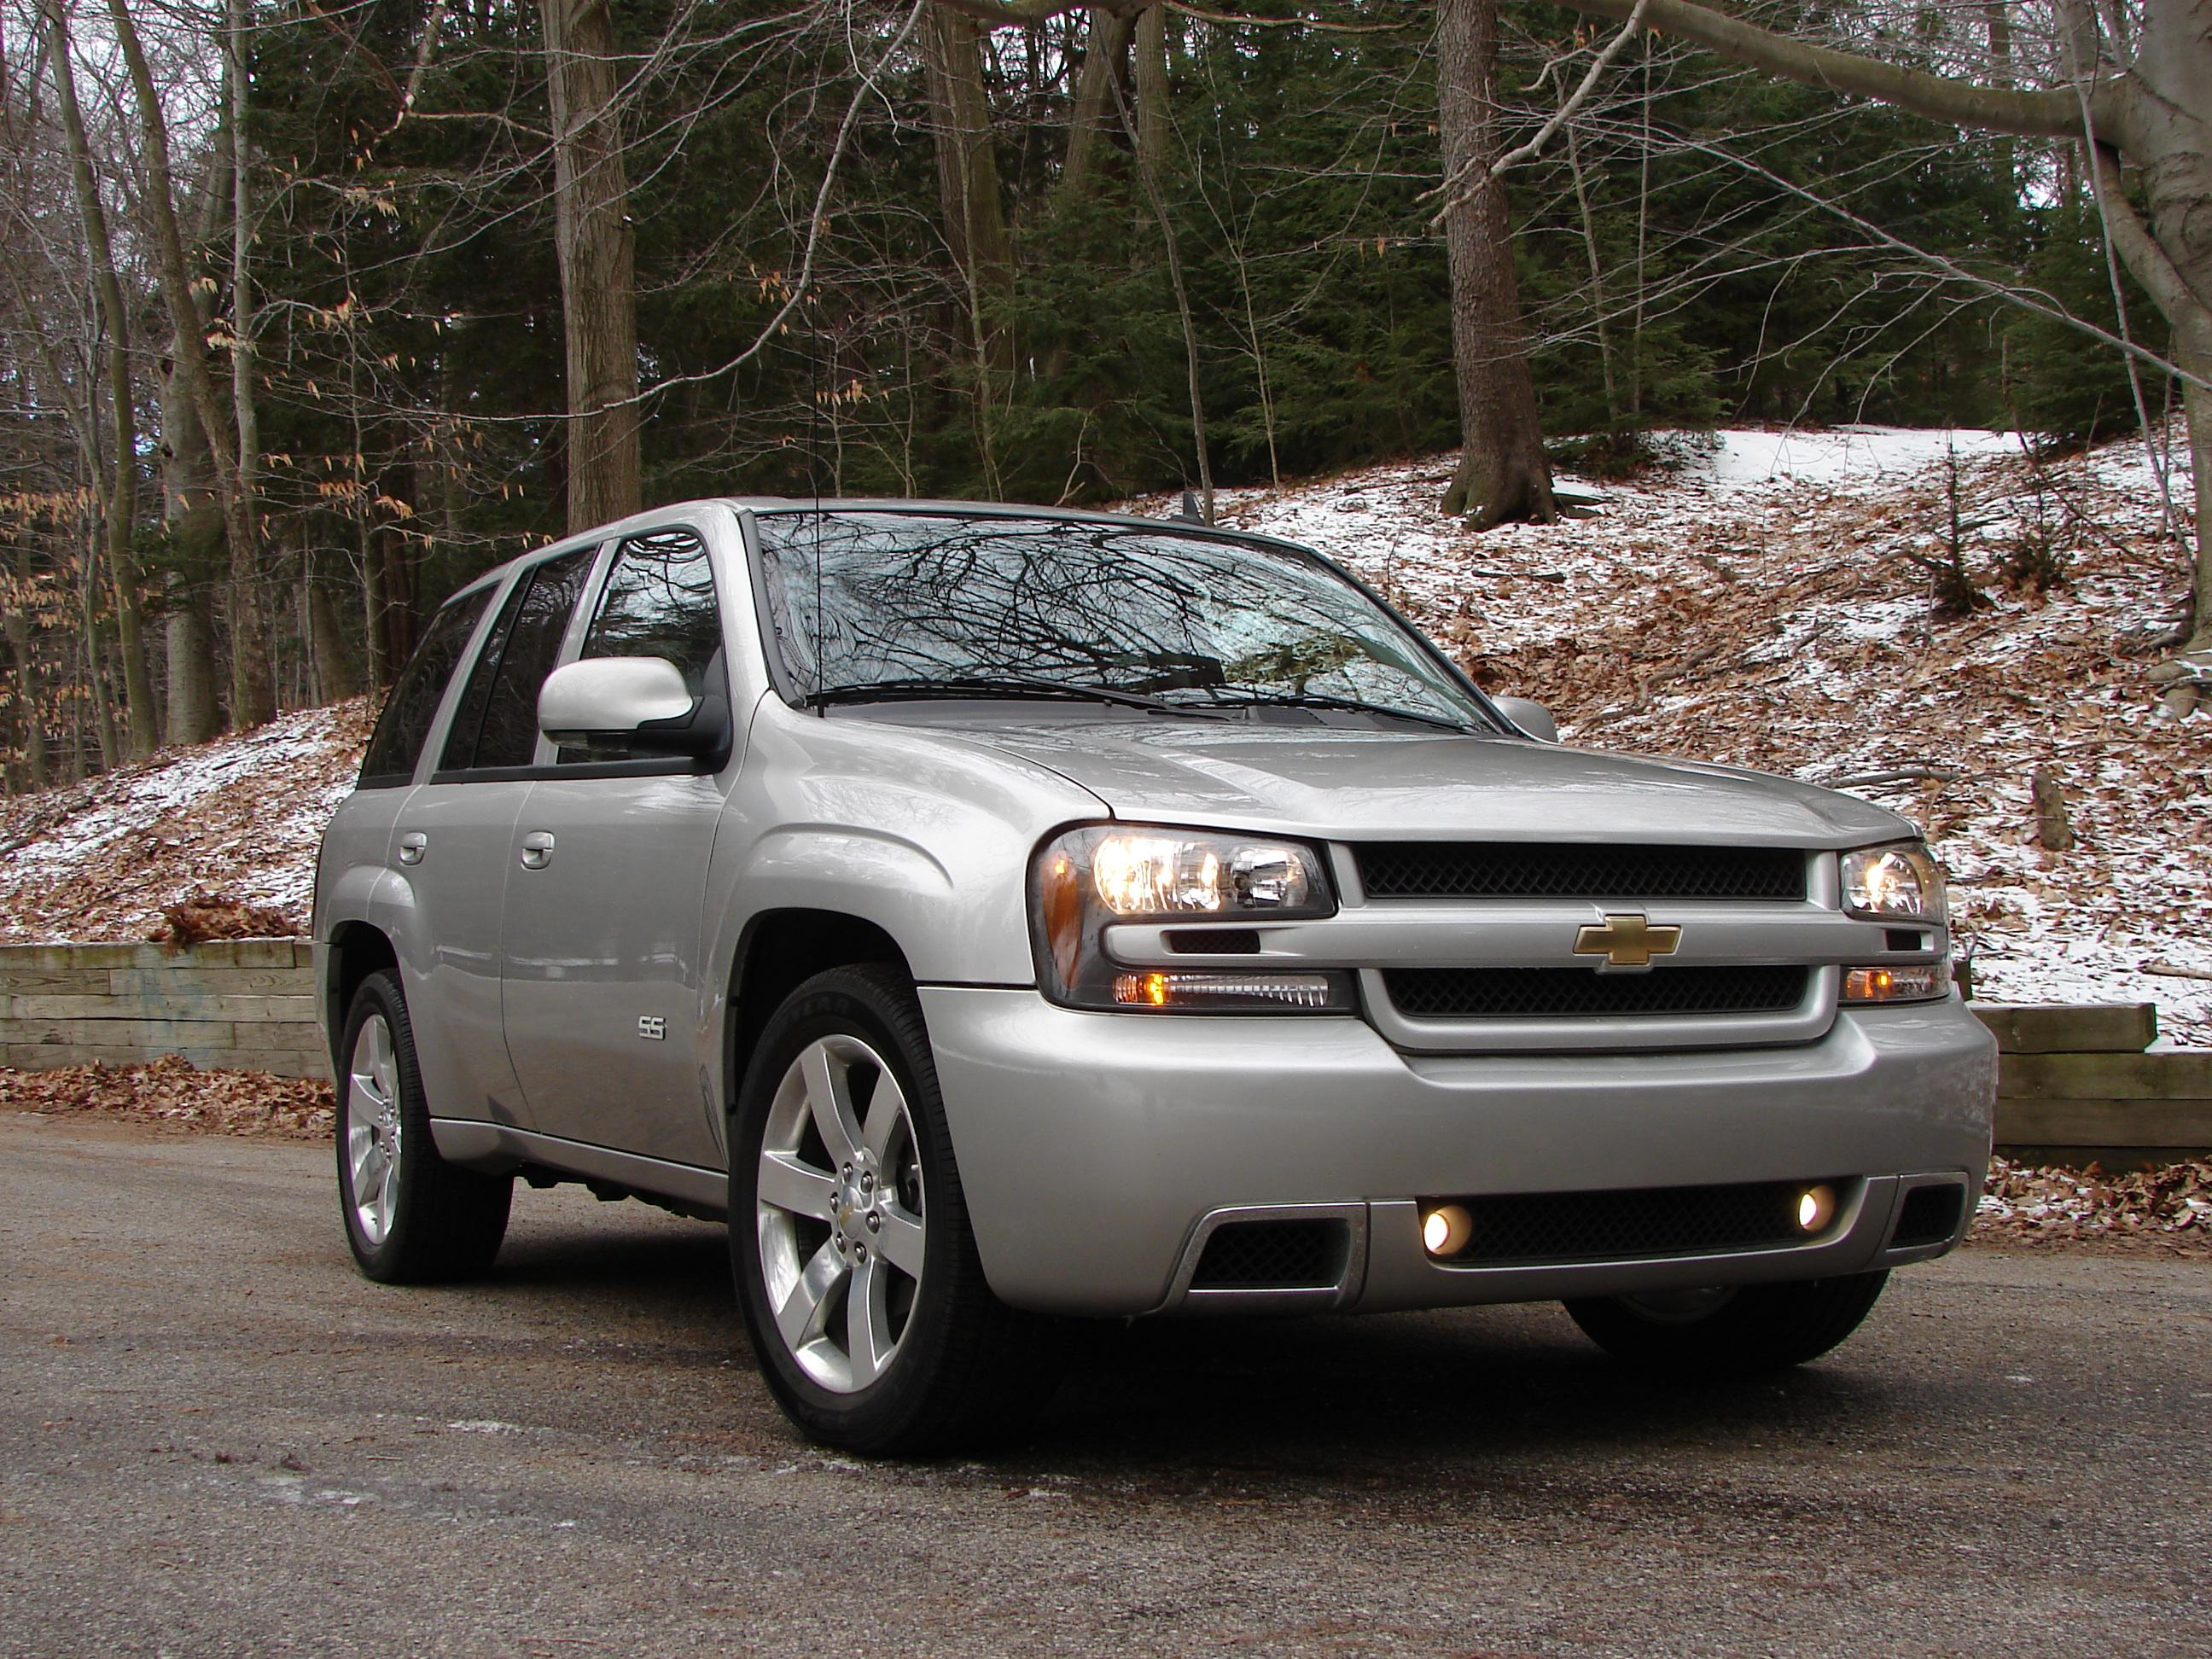 2006 Chevrolet Trailblazer #7